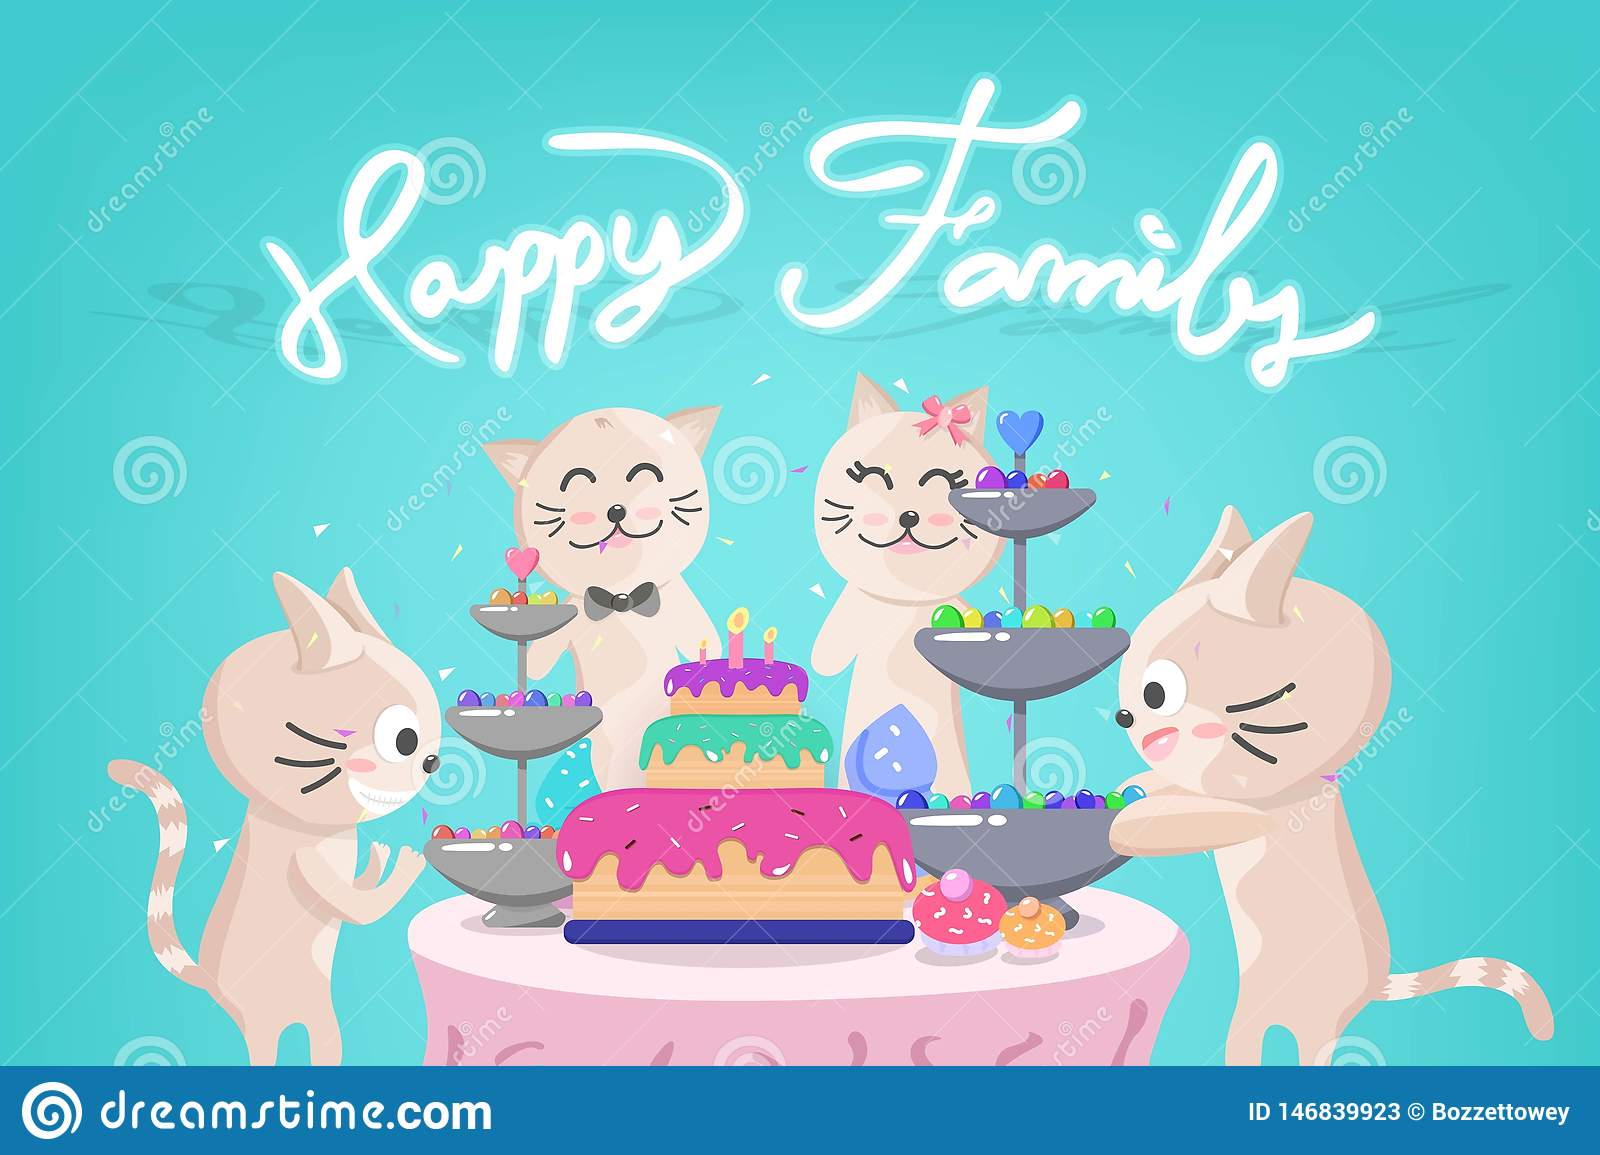 Happy Birthday Party Cute Kitten Family Celebration Confetti Falling Adorable Animal Cat Cartoon Characters Collection Holiday Stock Vector Illustration Of Flat Child 146839923